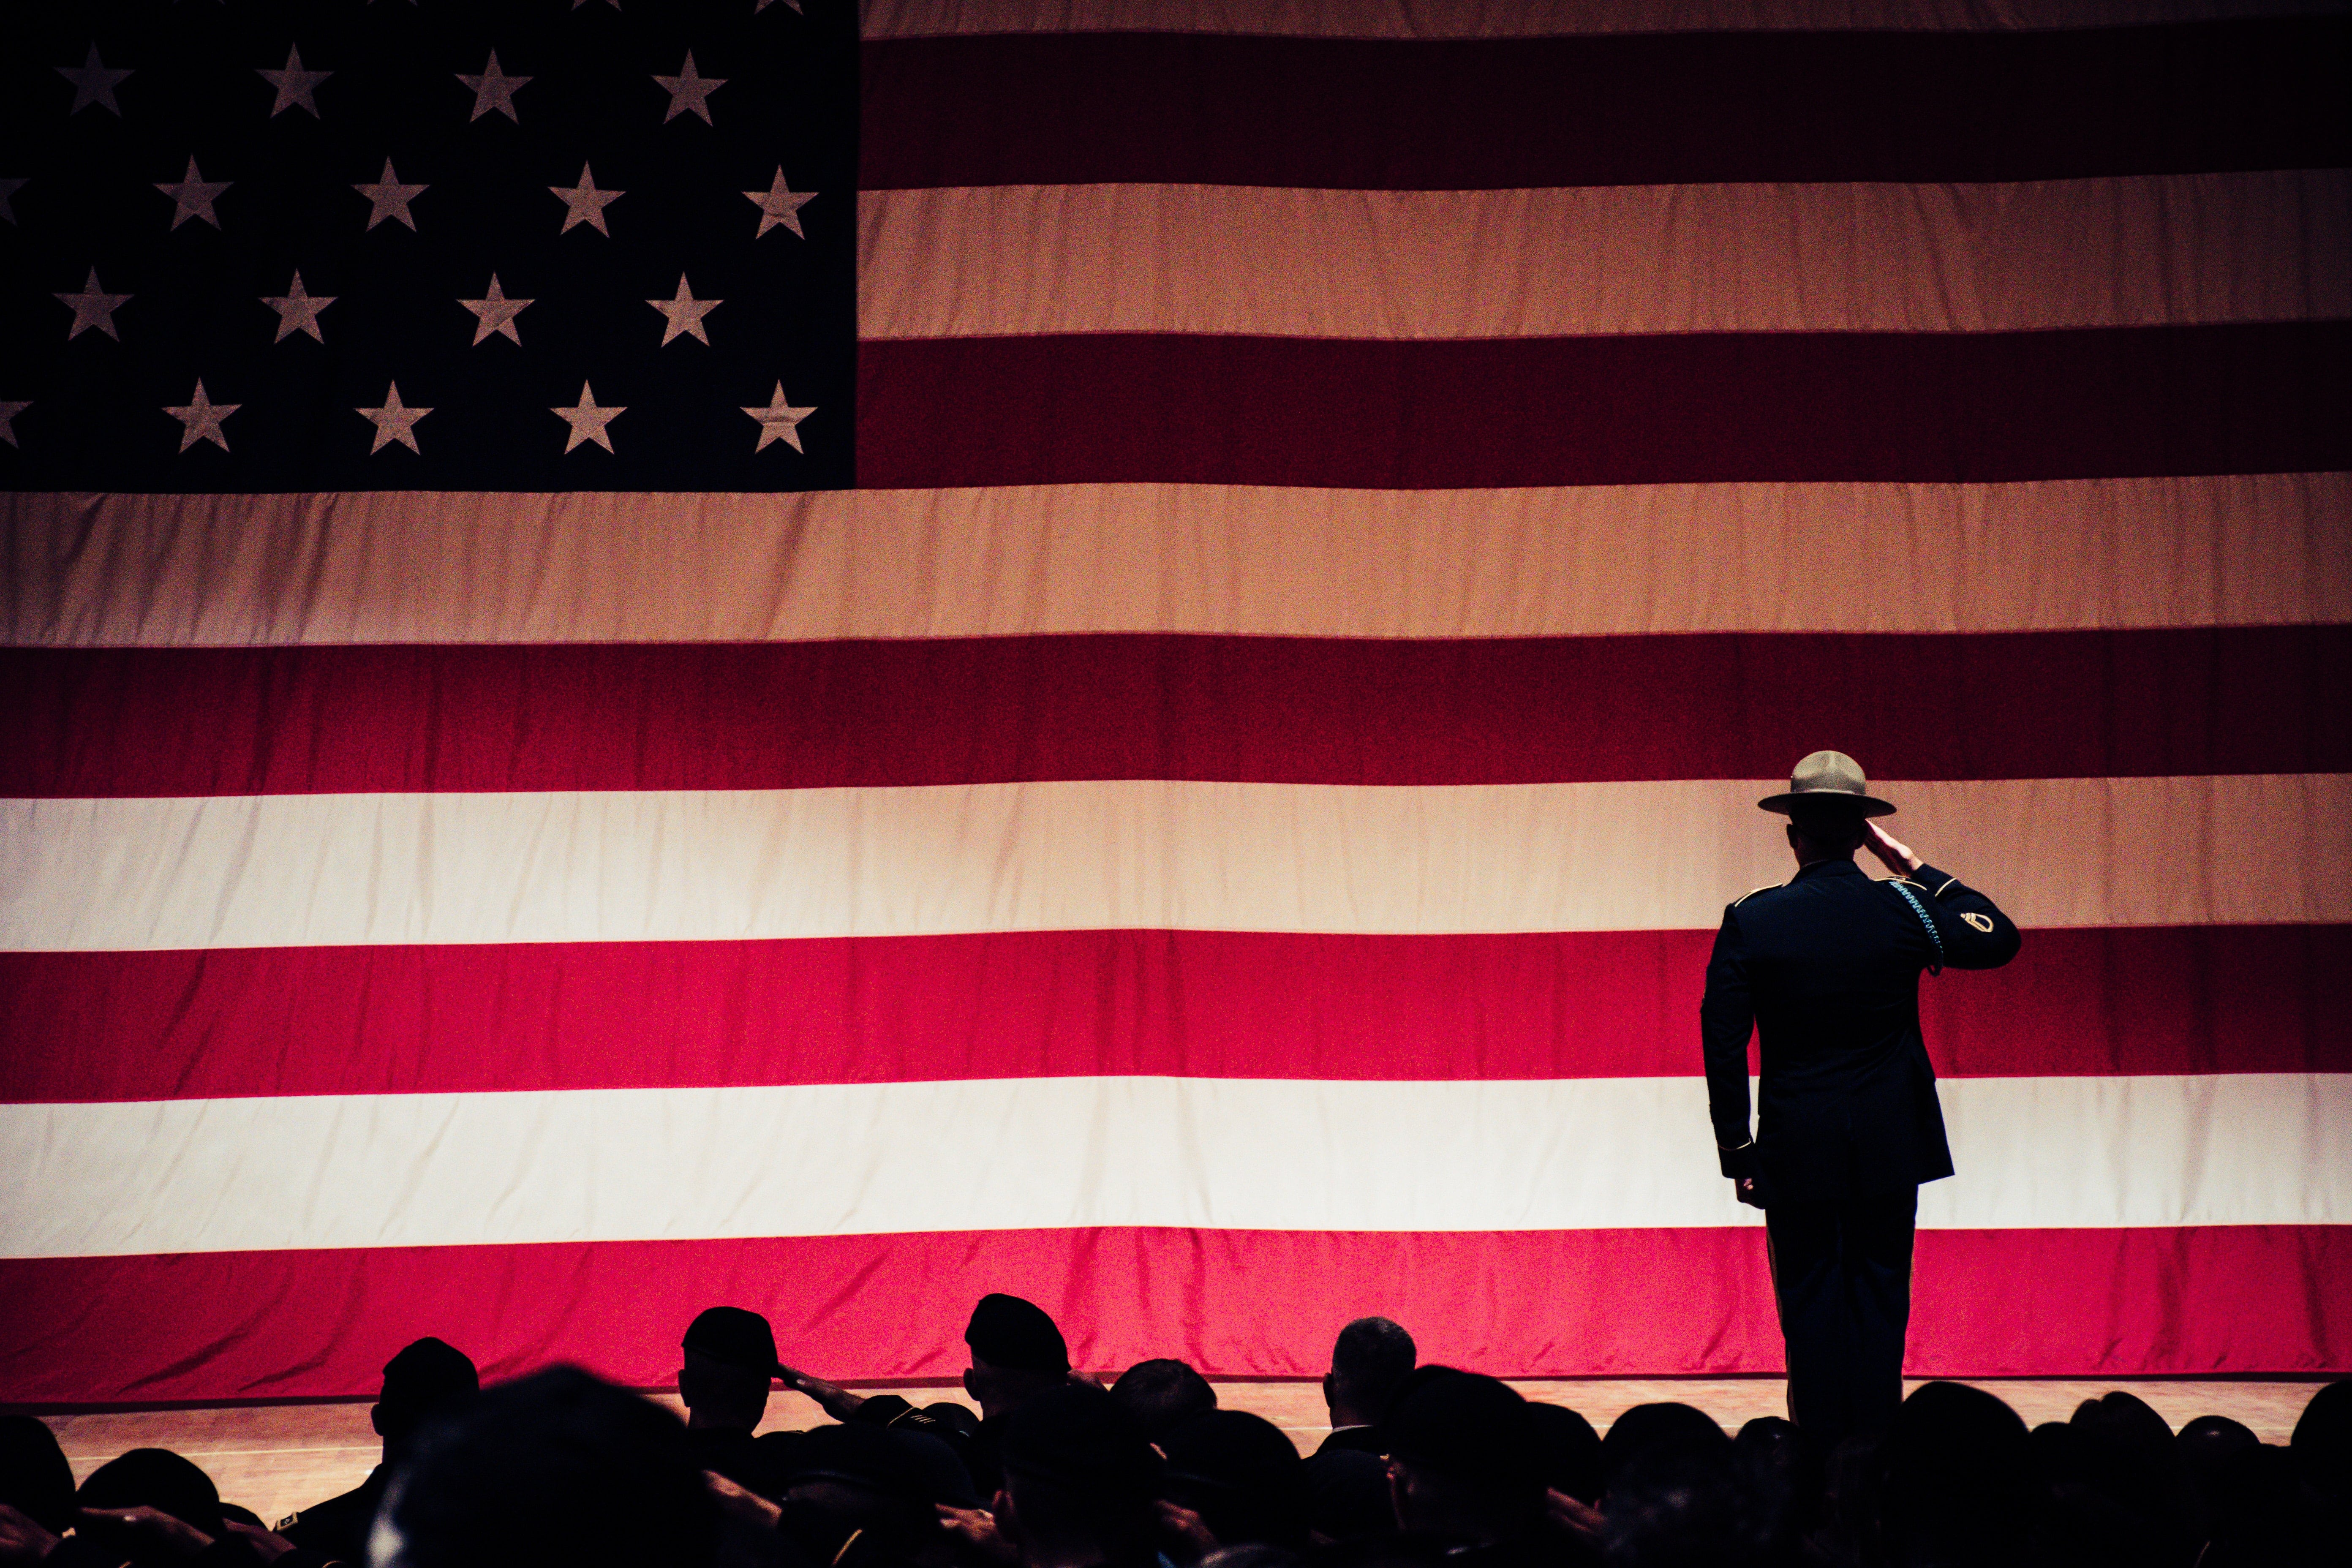 military officer saluting American flag